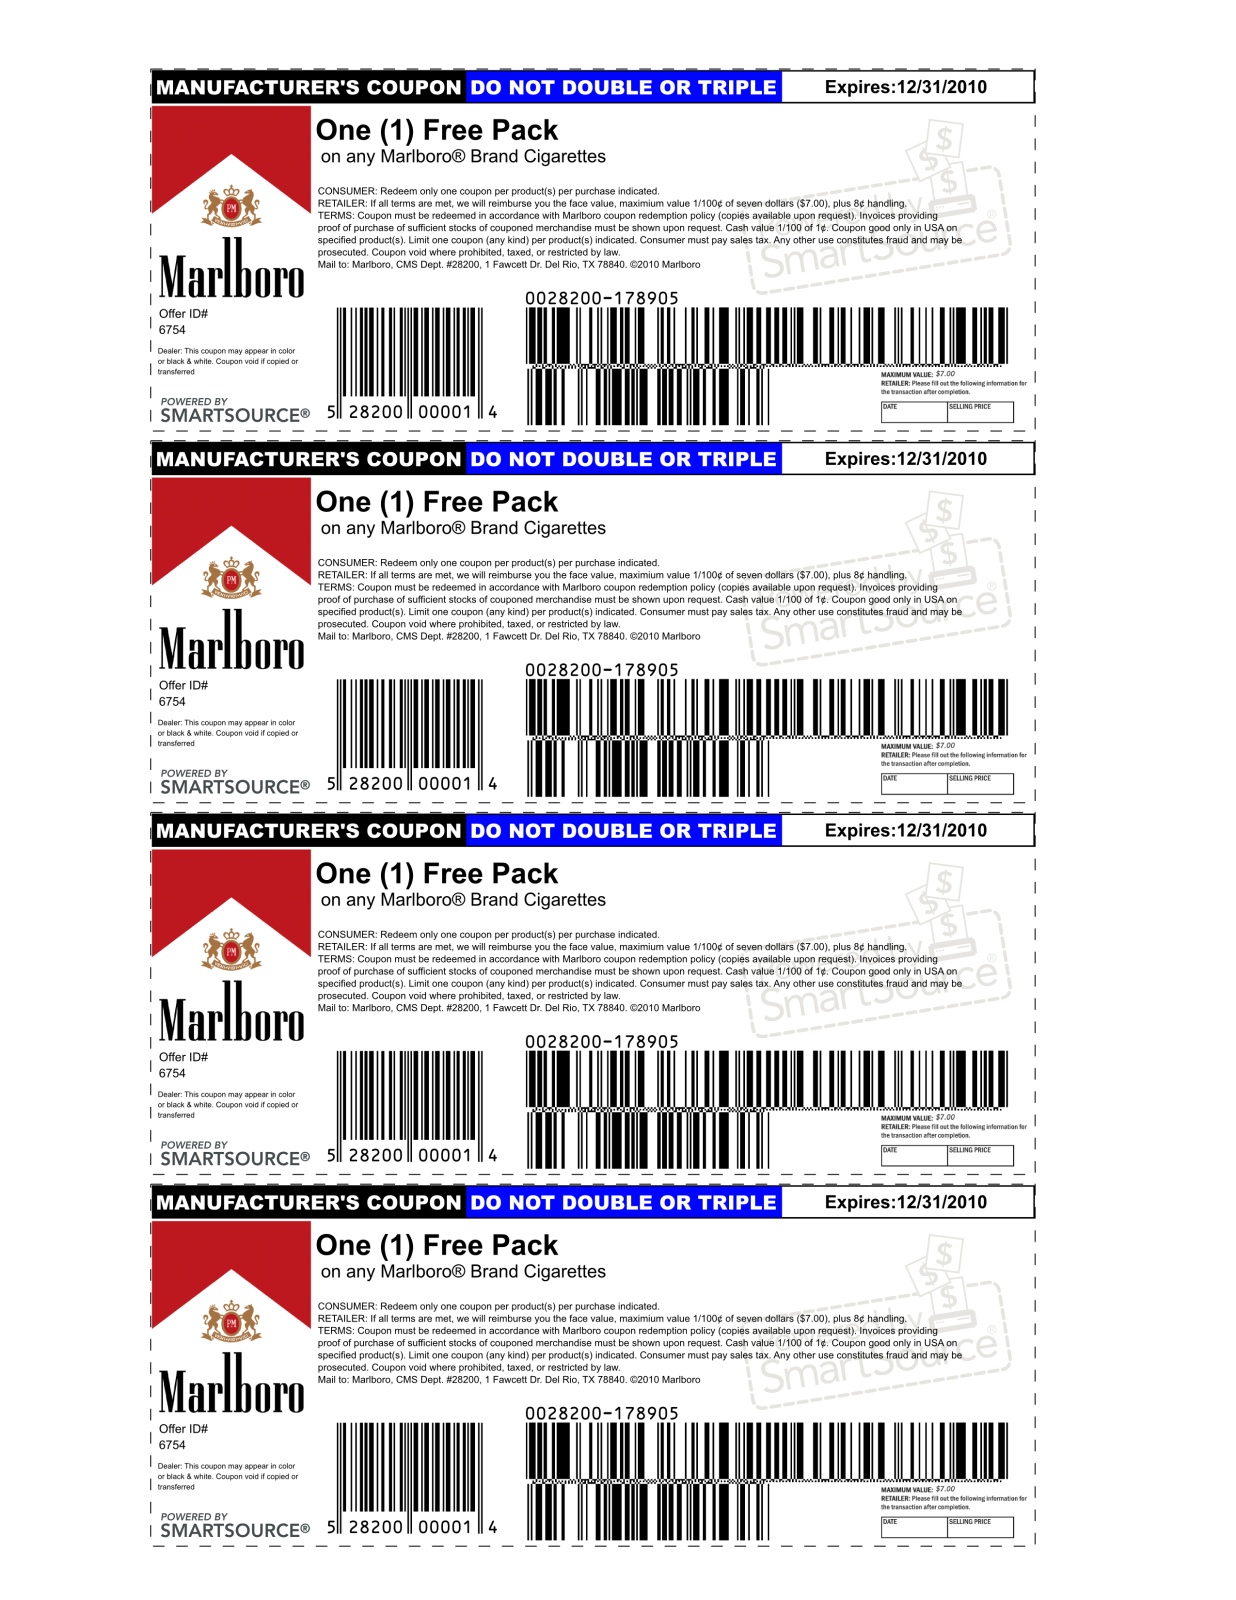 marlboro coupons printable 2013 | is using a possibly fake coupon